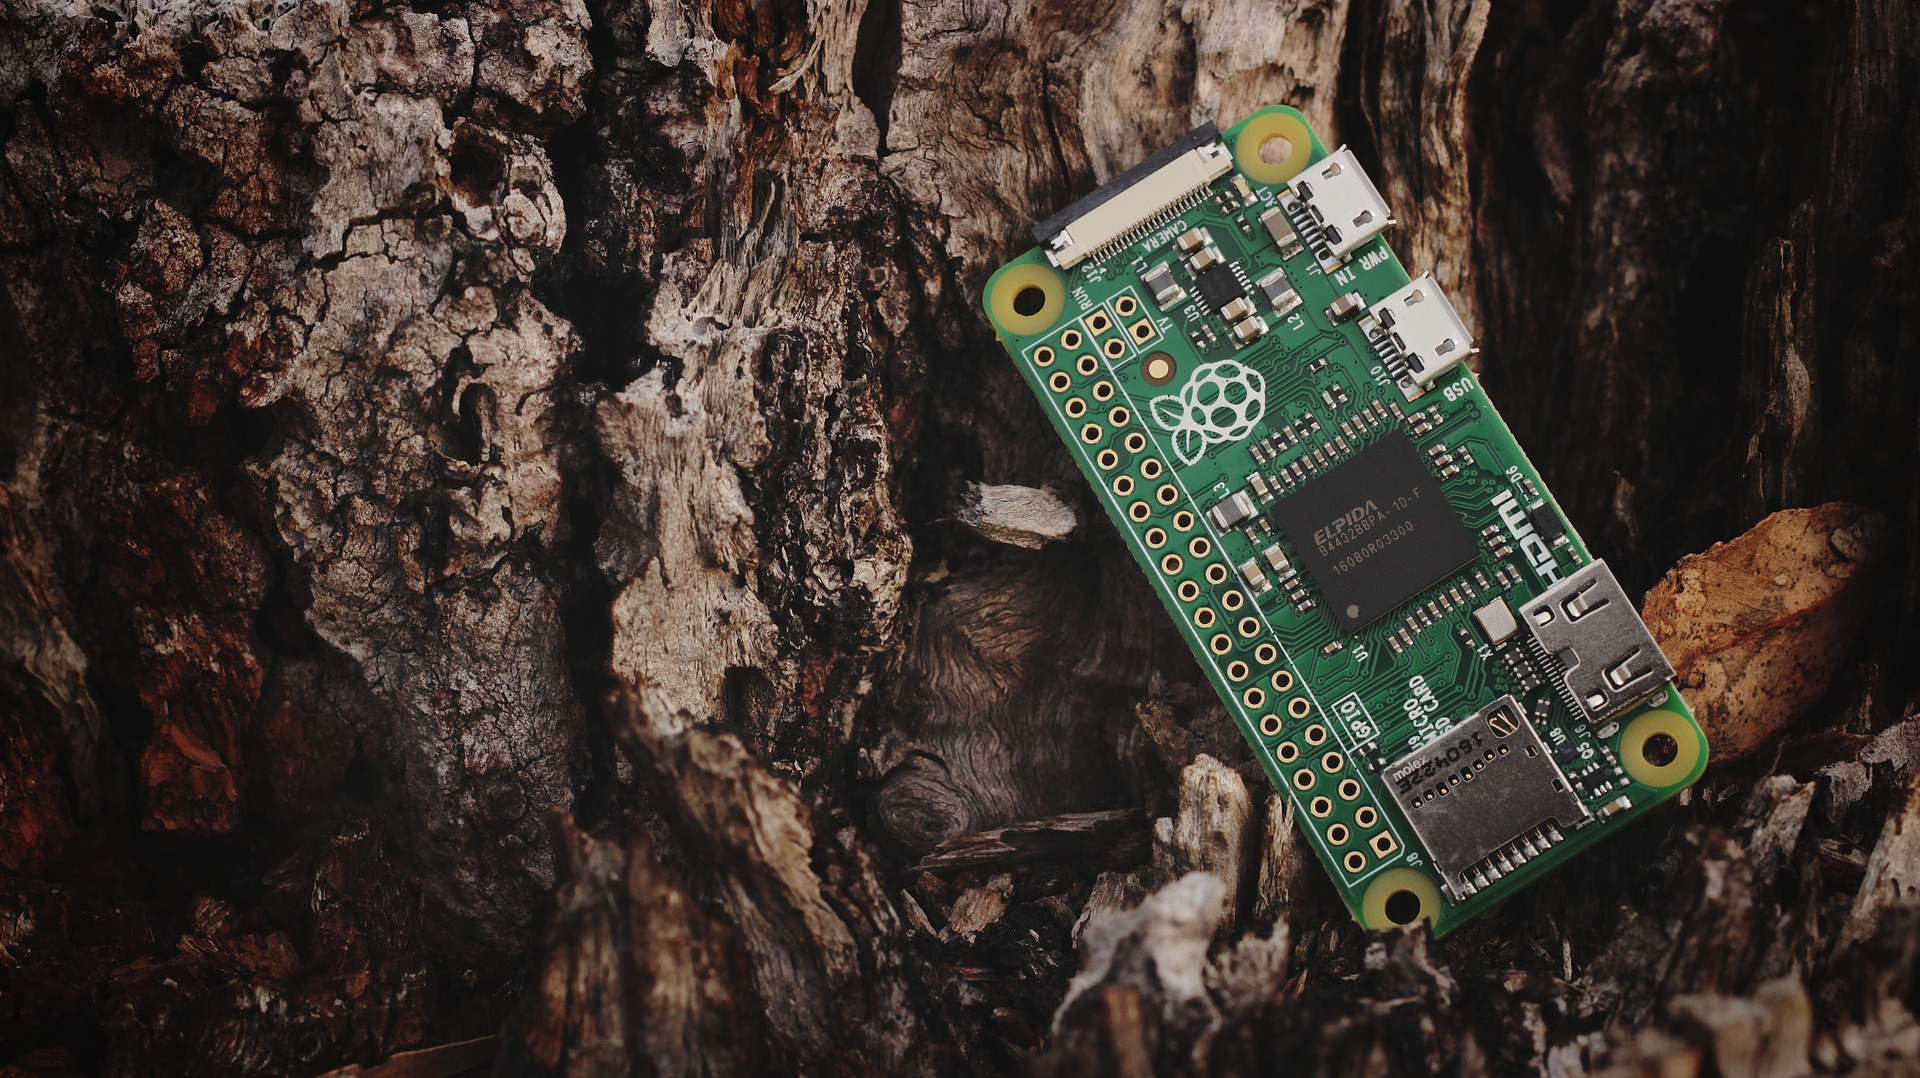 How to update your Raspberry Pi to the latest Raspbian OS